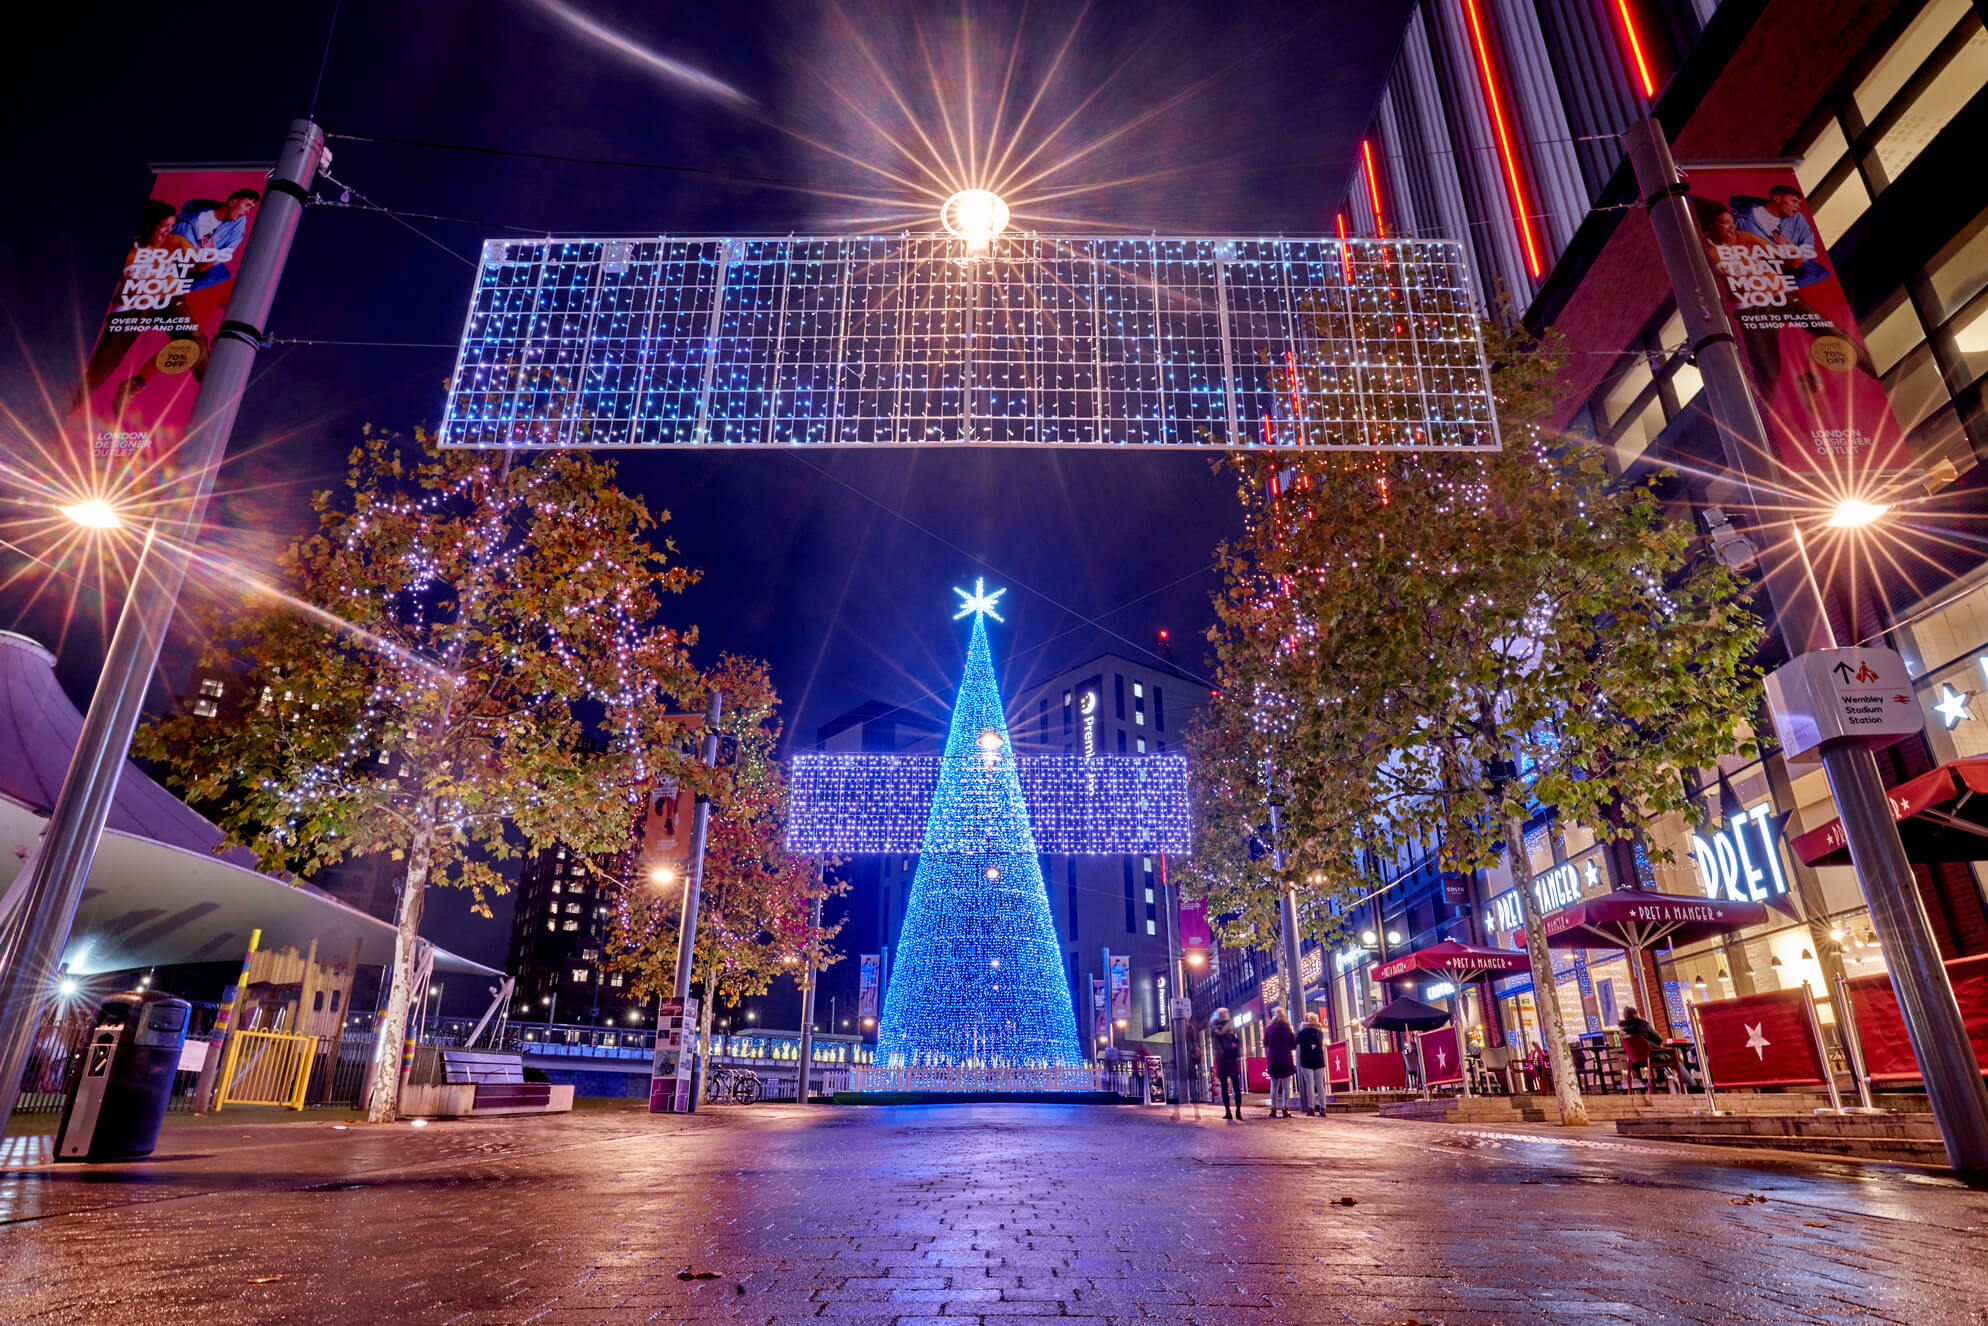 LED Tree and Cross Street Banners